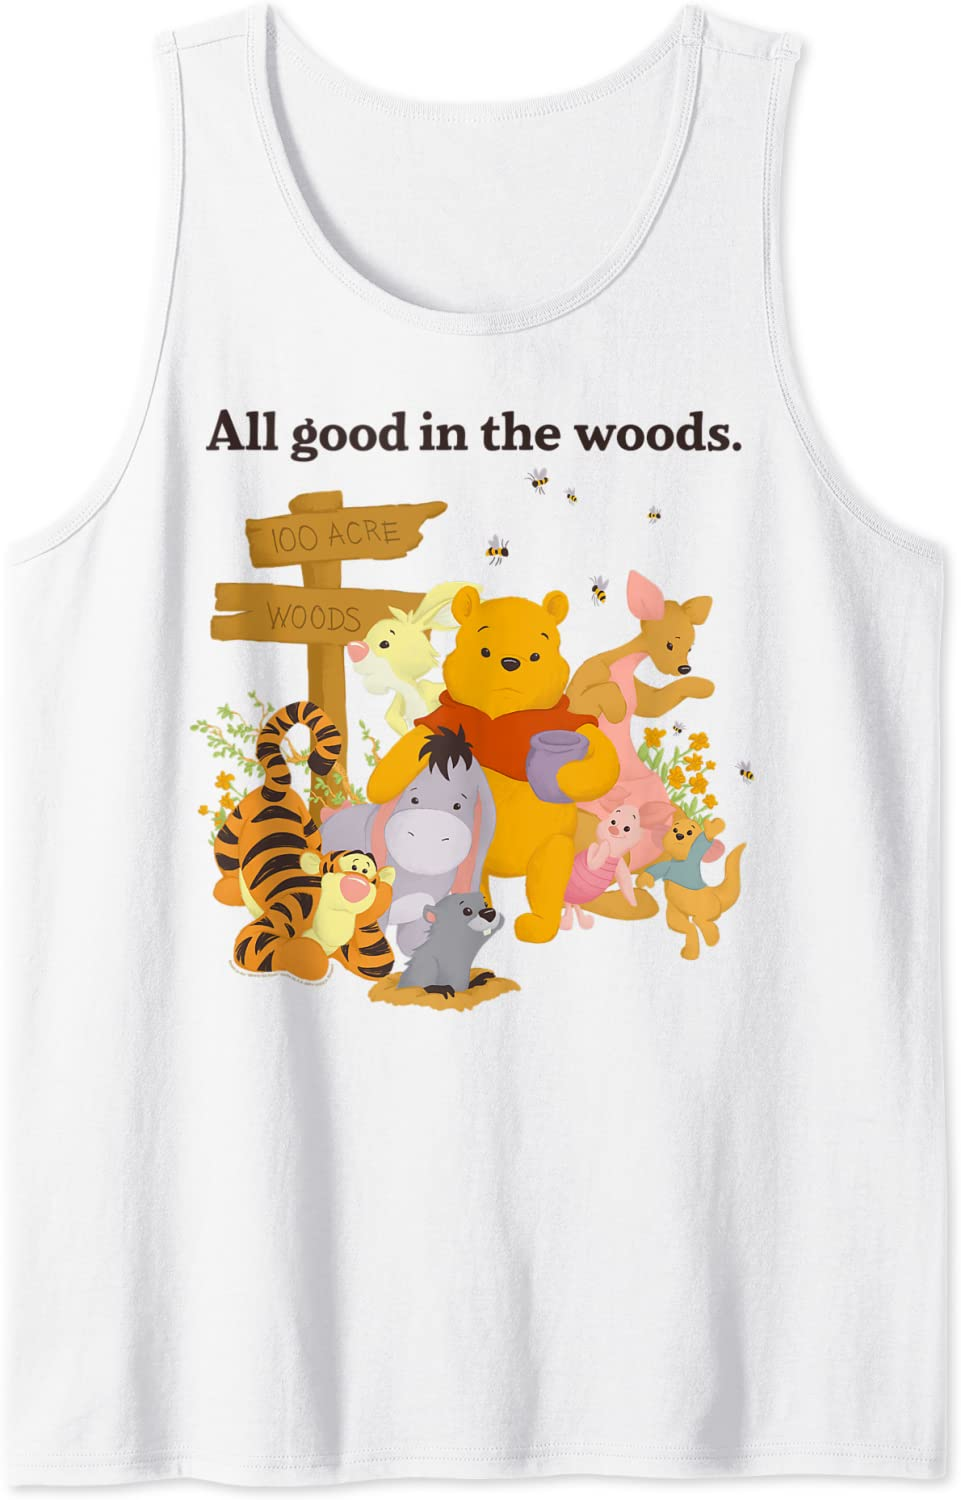 Special price Disney Winnie The Pooh Group Shot Good Tank In Woods All Top Classic